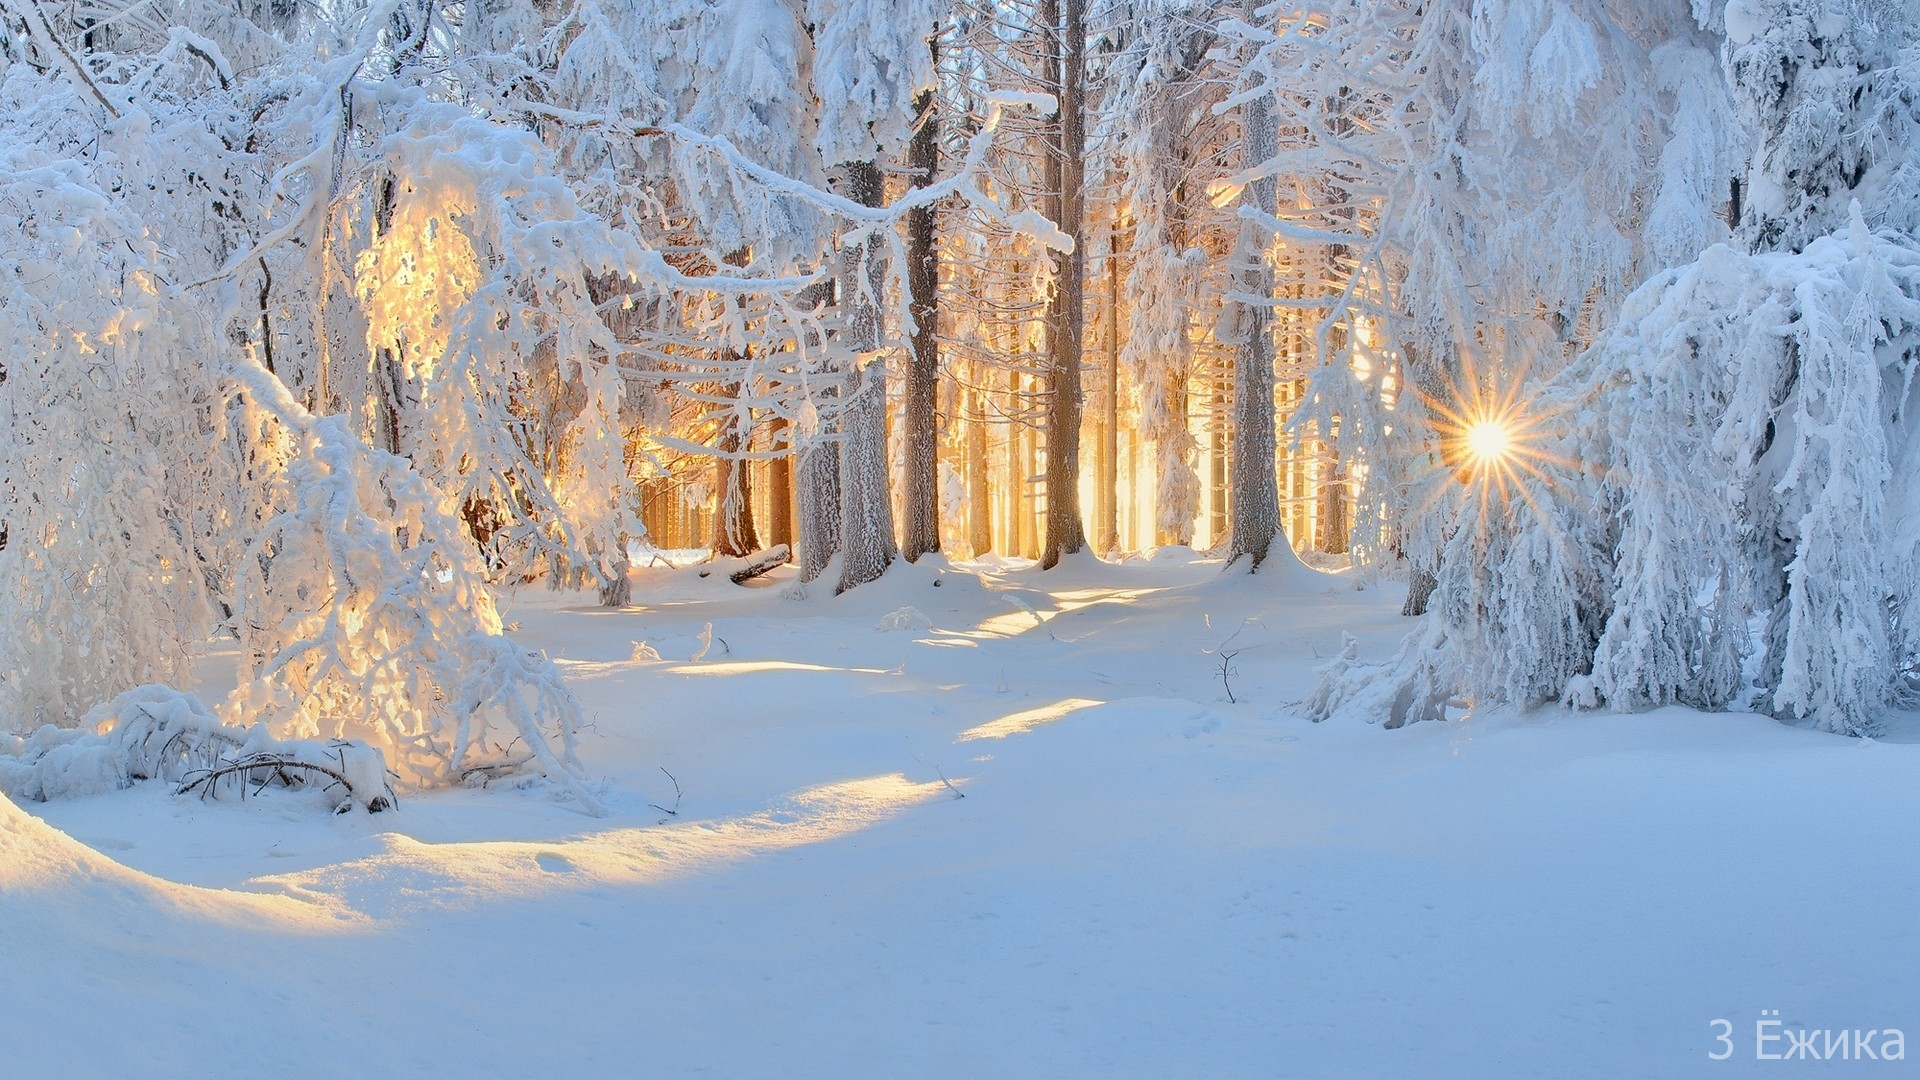 sunlight-trees-landscape-forest-white-nature-snow-winter-ice-cold-frost-sun-rays-Freezing-tree-weather-season-blizzard-geological-phenomenon-winter-storm-107706